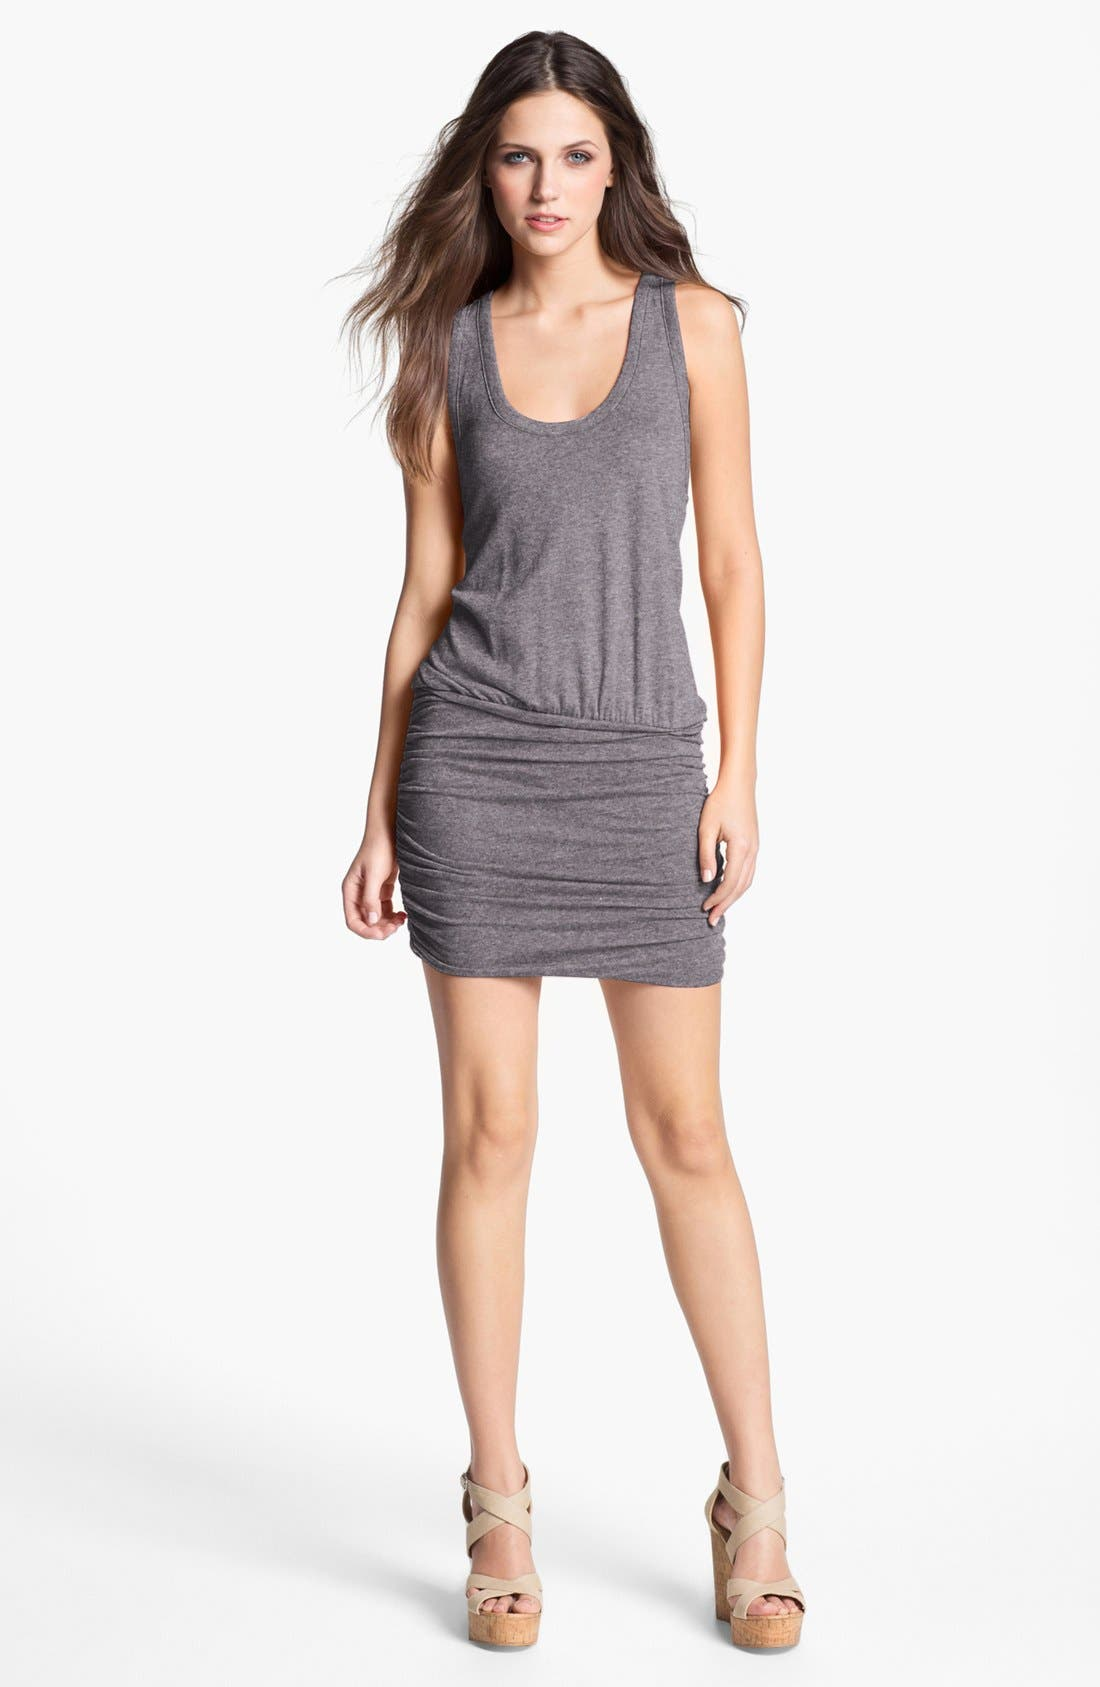 Alternate Image 1 Selected - Soft Joie 'Bond' Ruched Dress